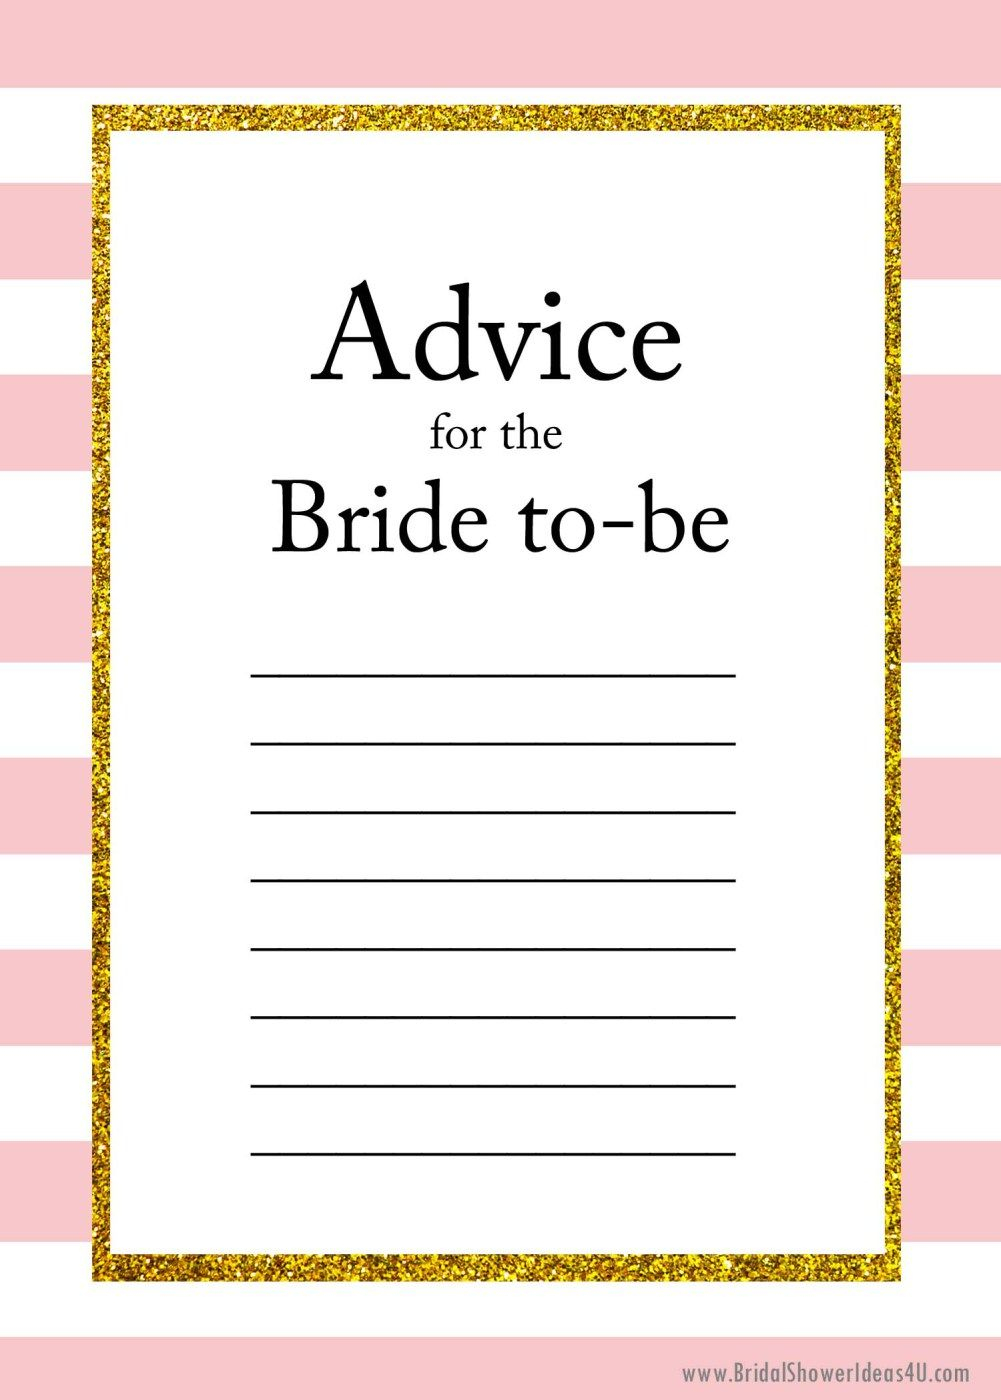 Free Printable Advice For The Bride To Be Cards | Friendship - Free Printable Bridal Shower Cards